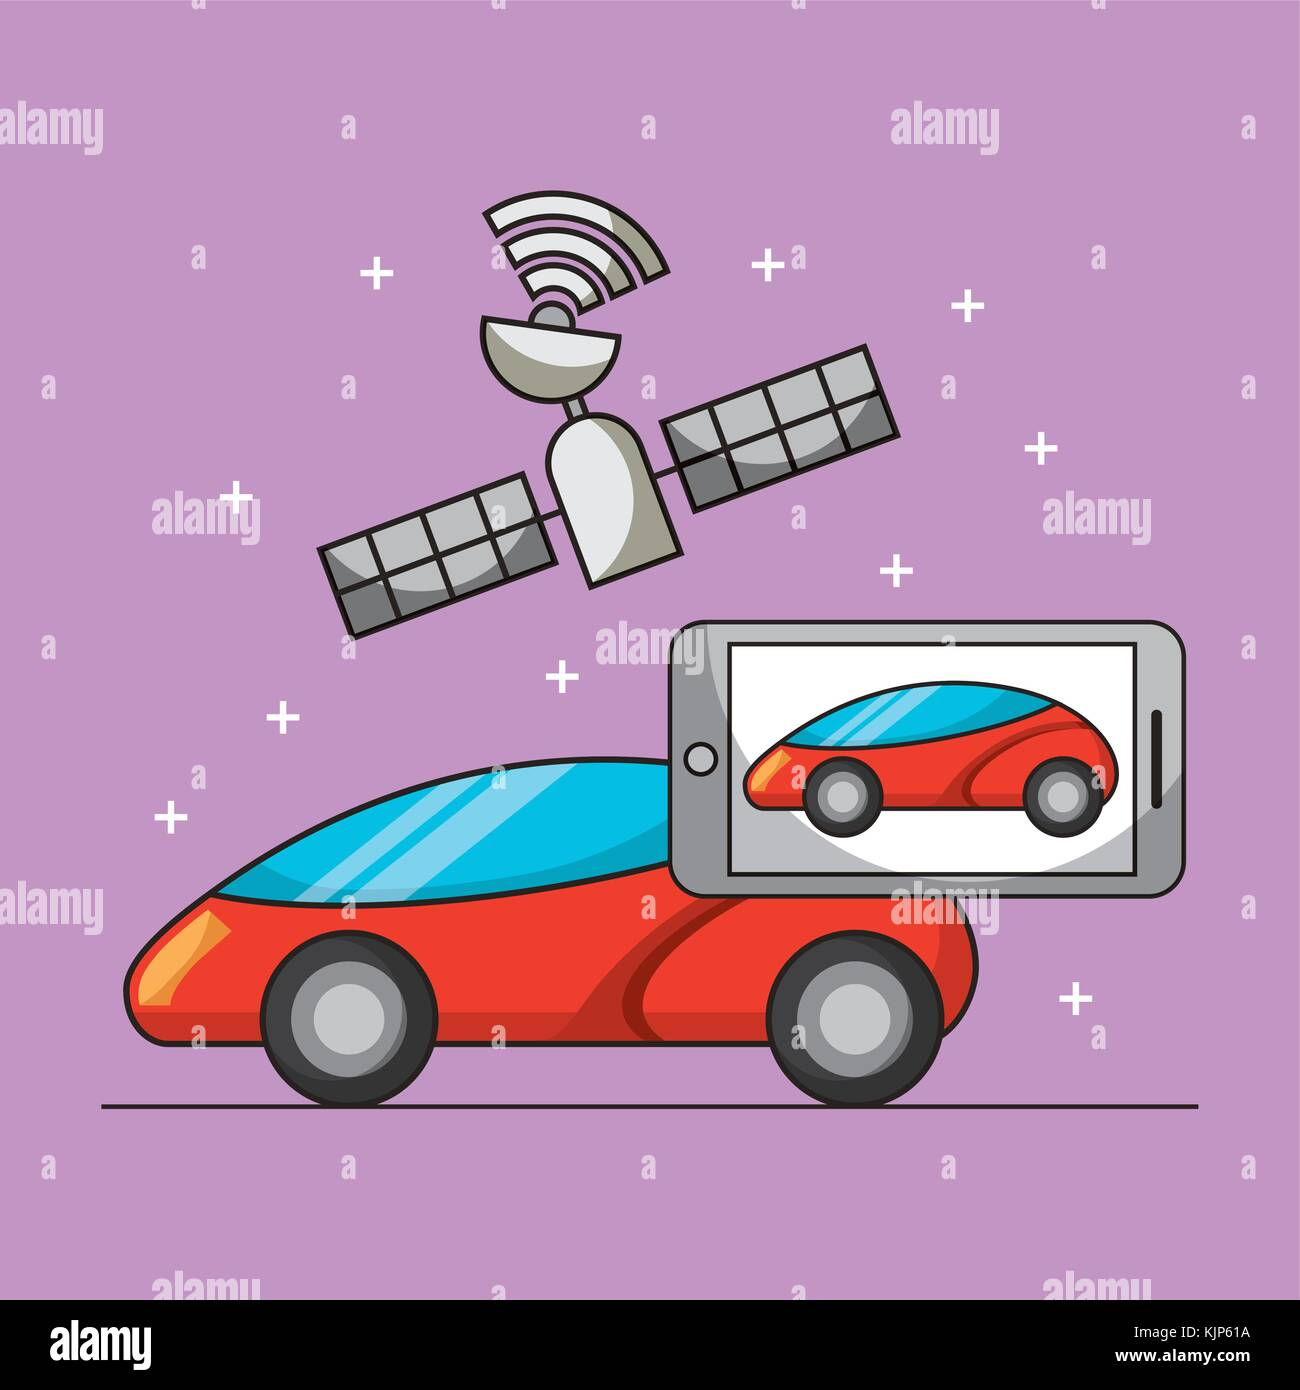 smart car gps satellite navigation technology for automobile search - Stock Image